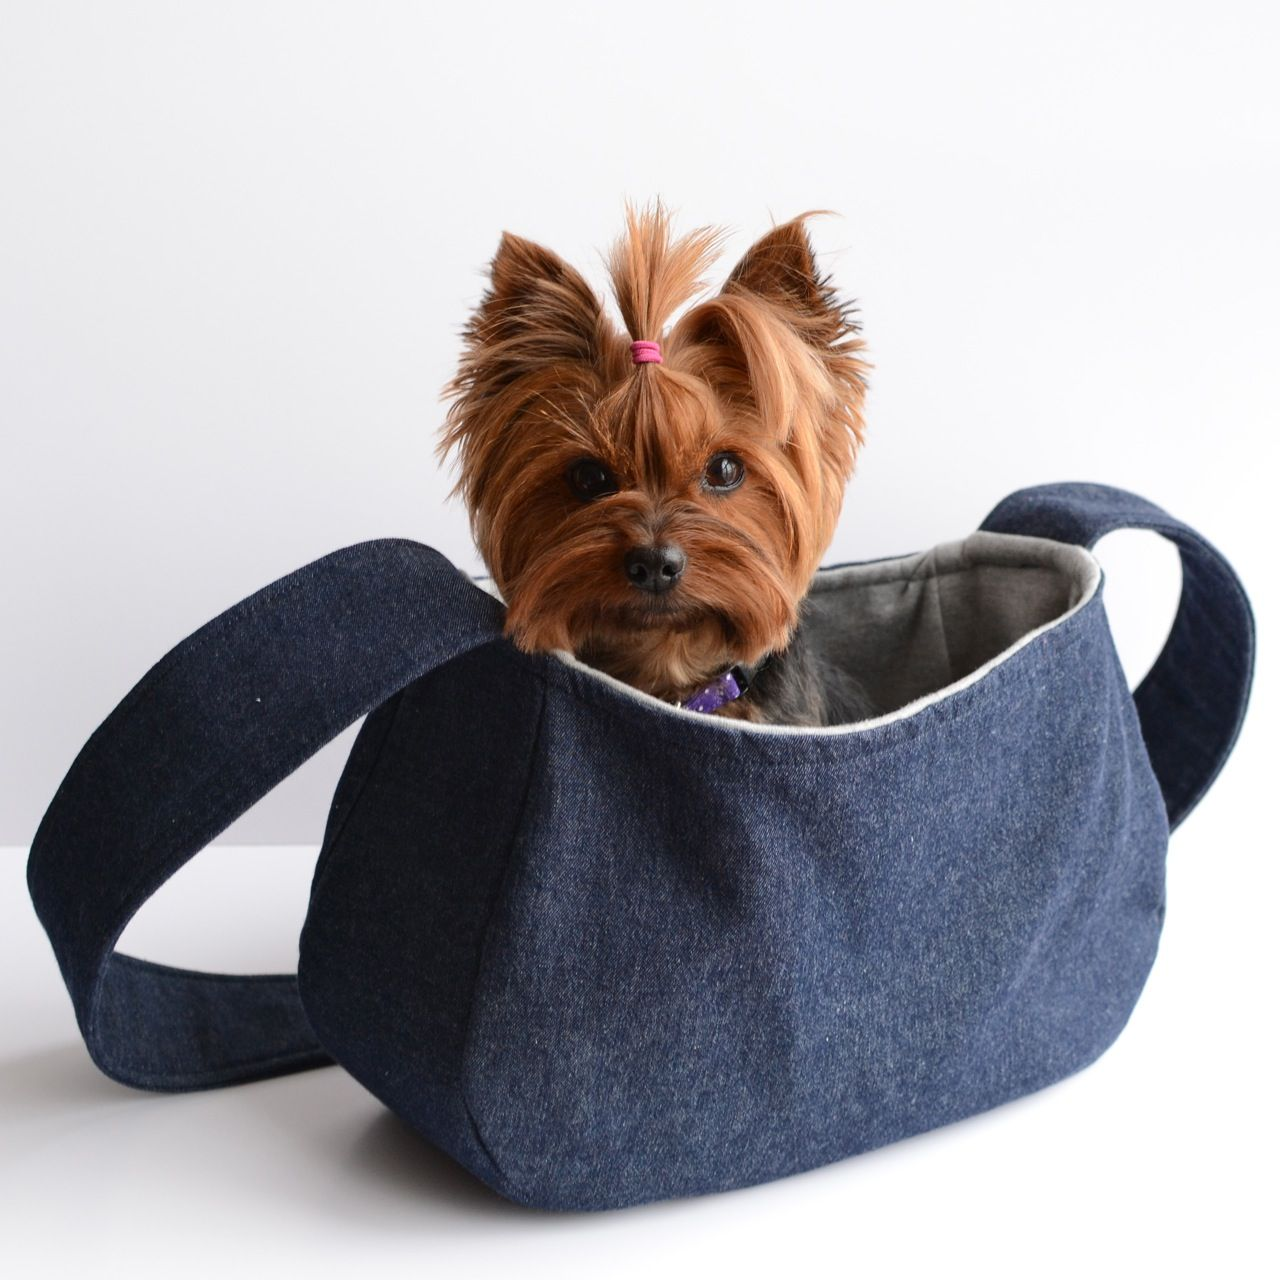 Doggy Sling Bag Pattern Sewing And Crochet Dog Sling